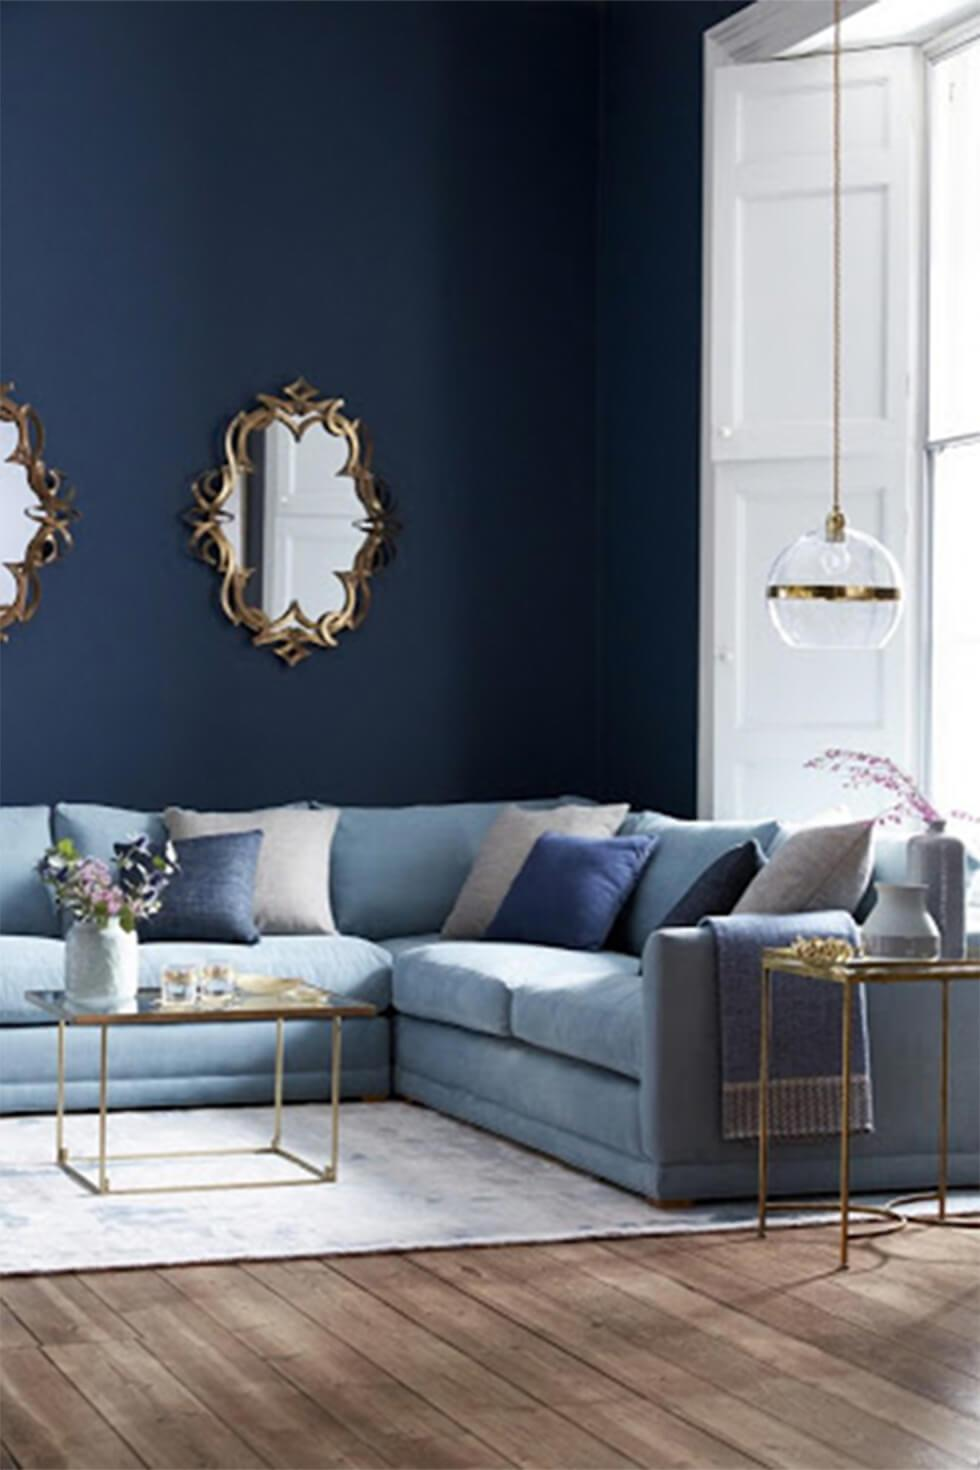 Light blue corner sofa in a cosy living room with navy walls.